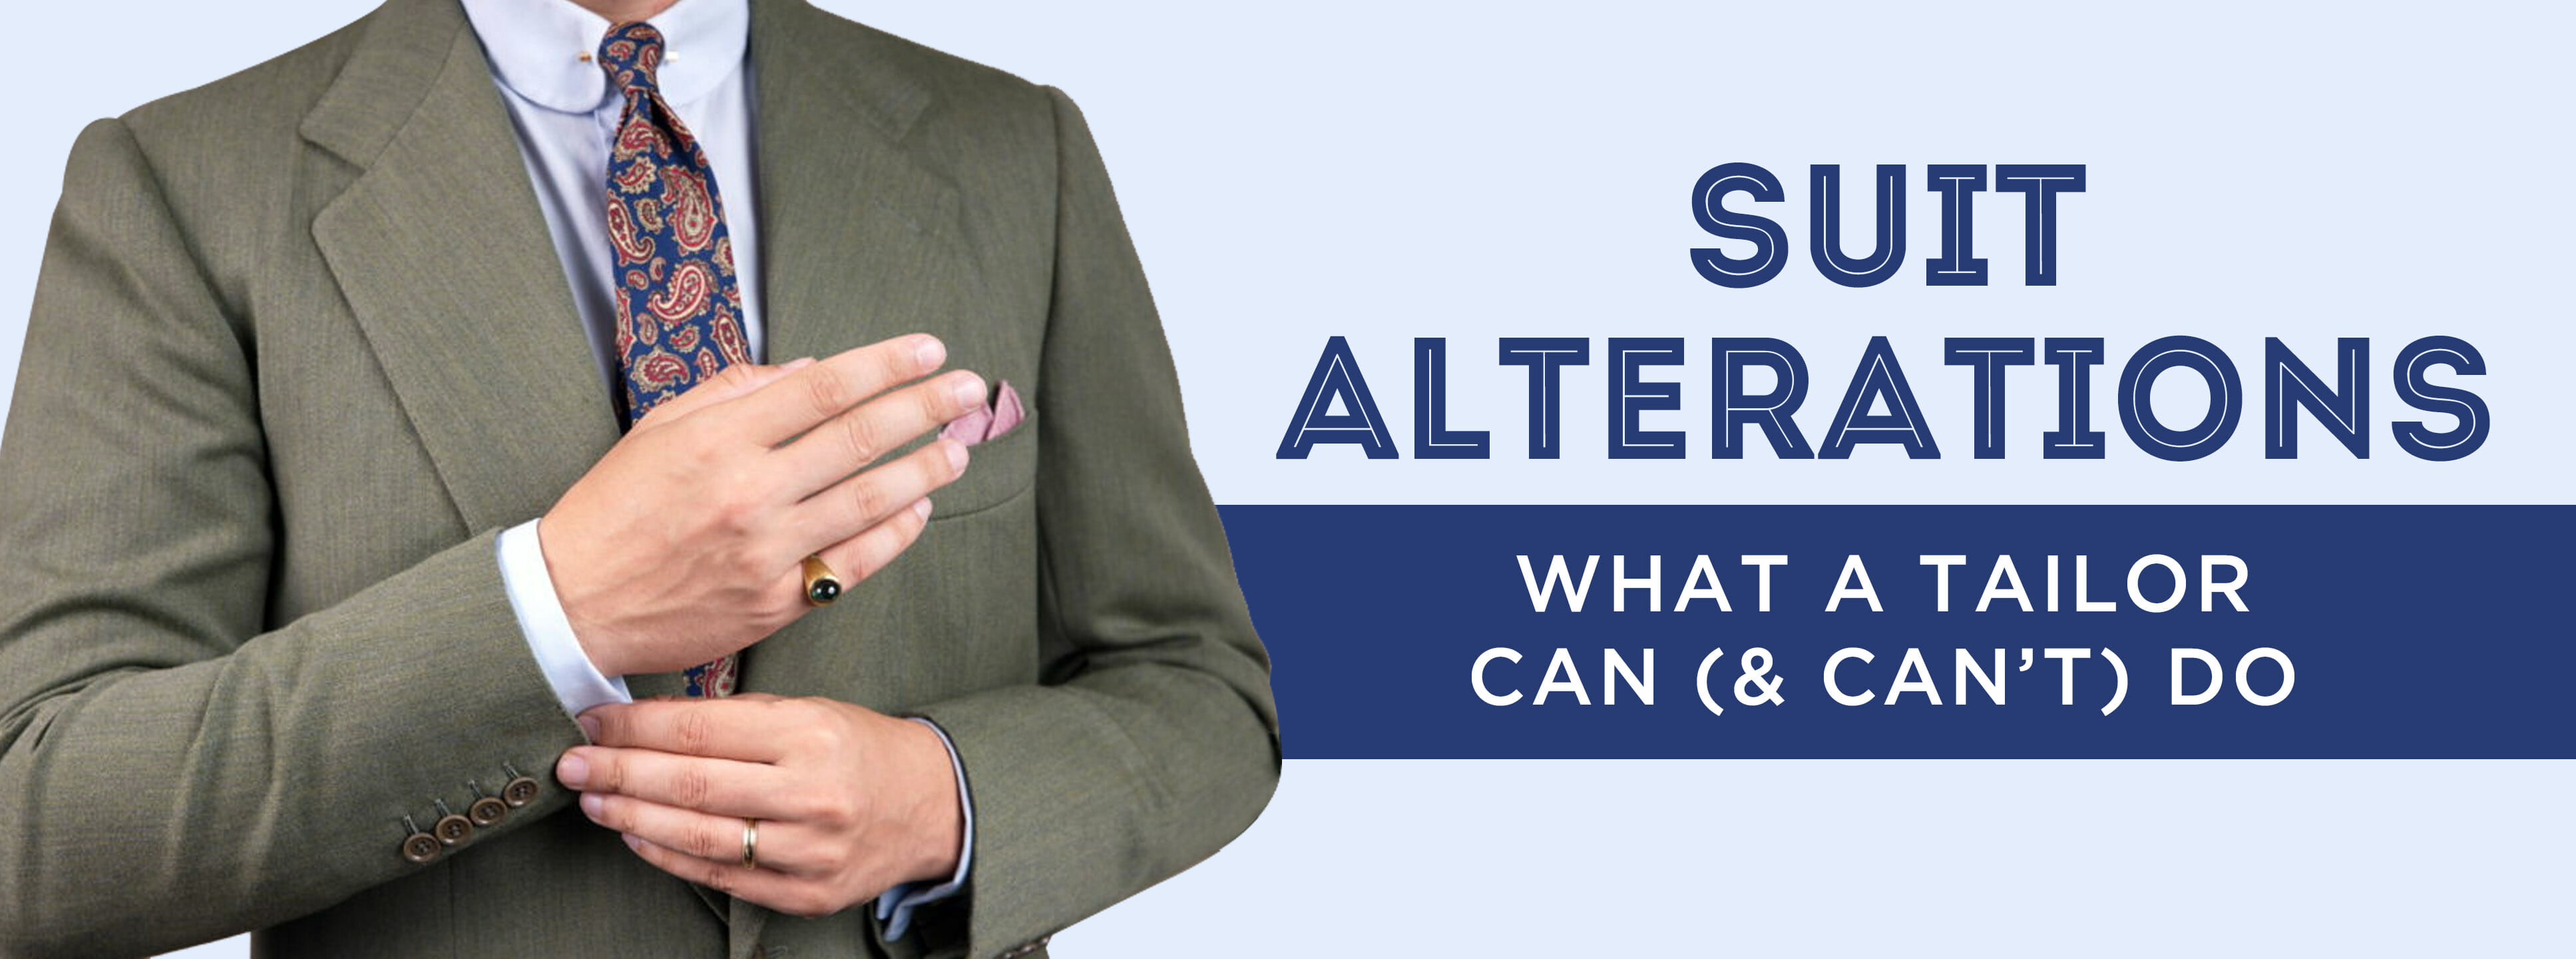 f5842aa262c Suit Alterations  What a Tailor Can (  Can t) Do — Gentleman s Gazette